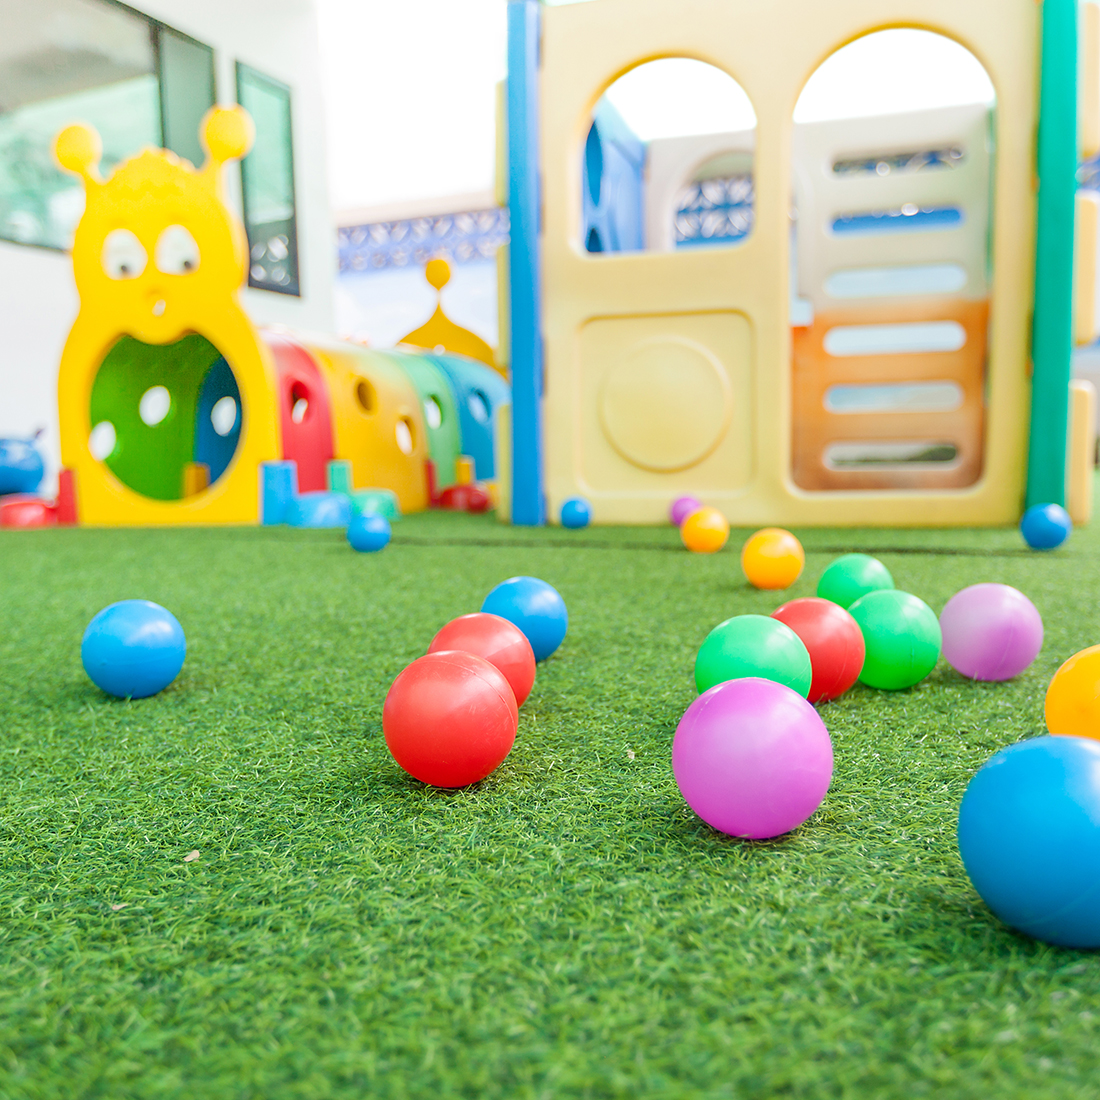 Playschool Astroturf1100